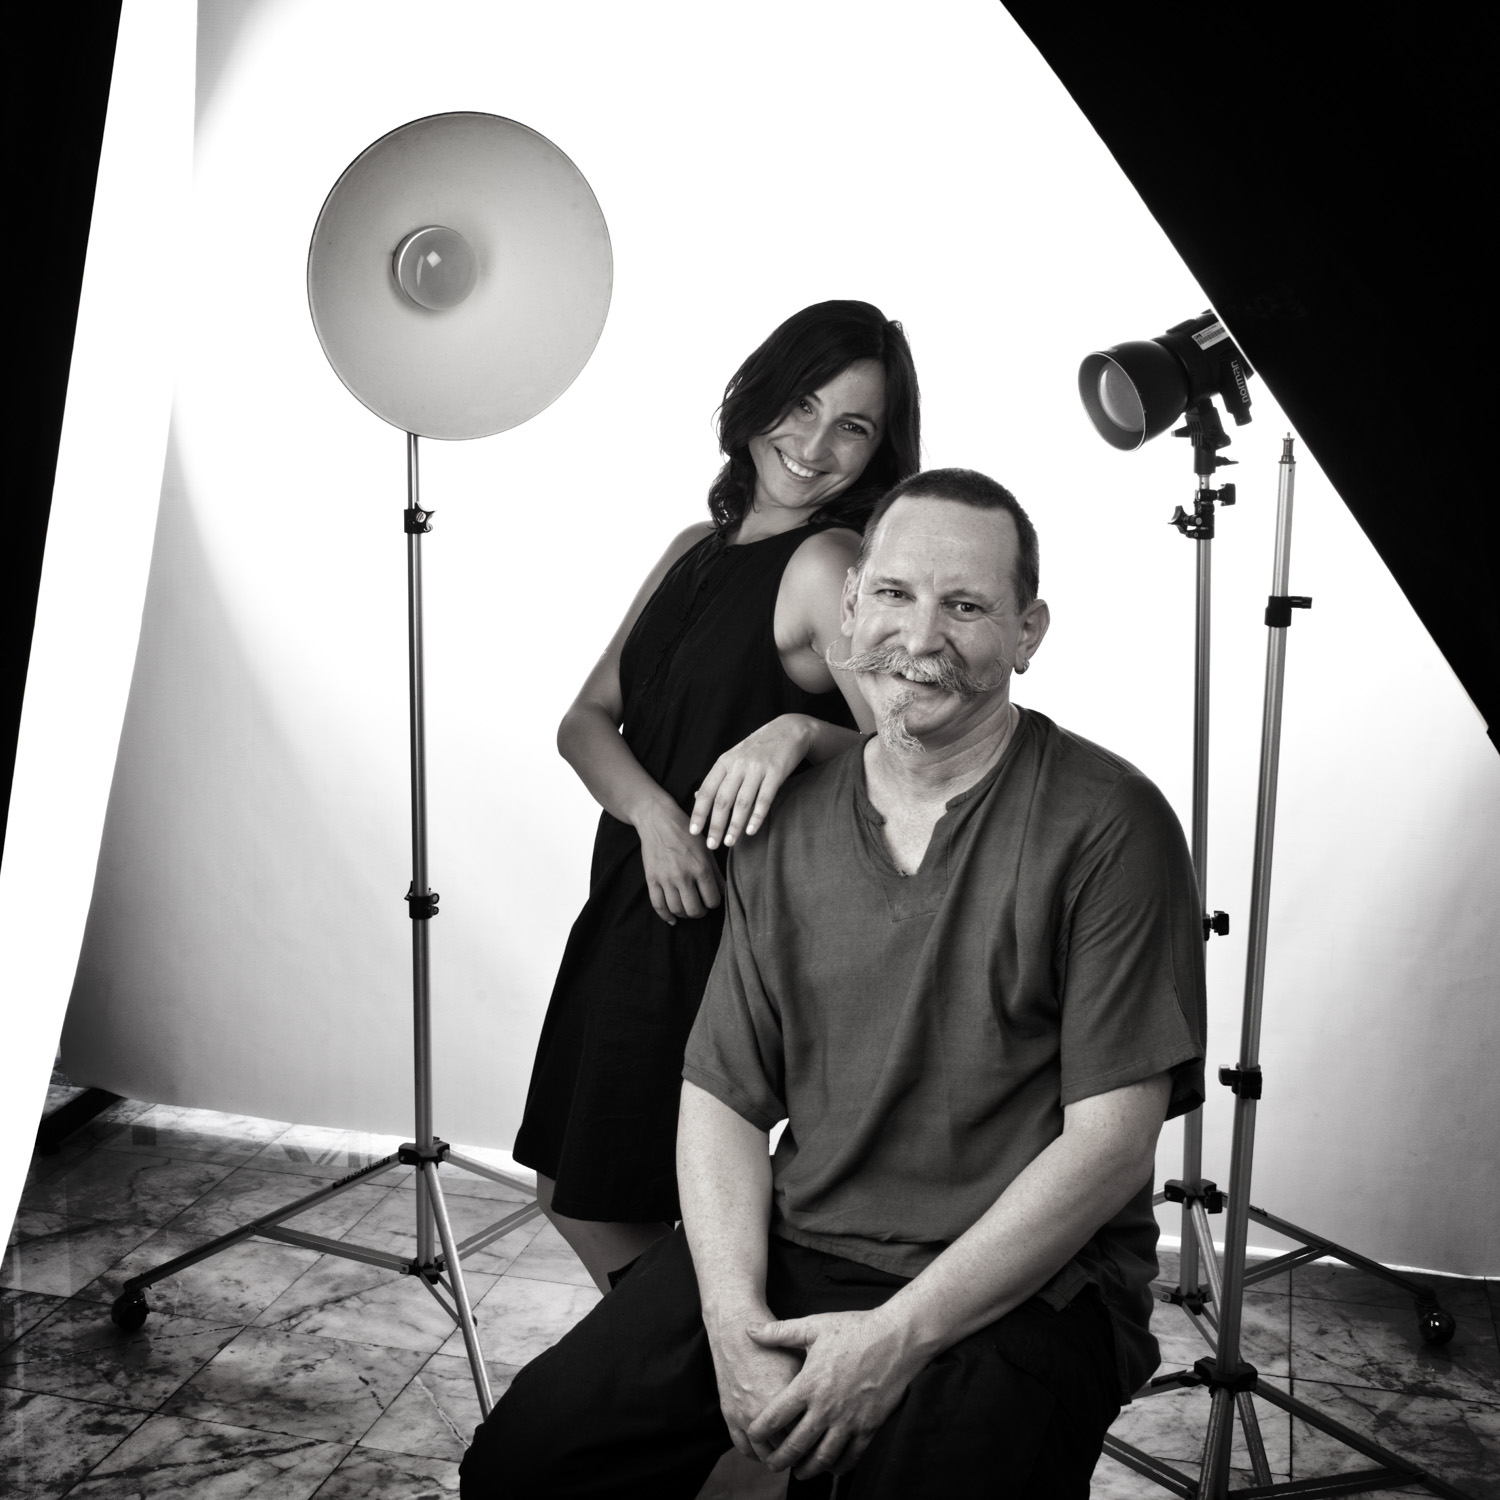 Photographer and Model in the Studio DPS Ultimate Guide to Photographing People for Shy Photographers